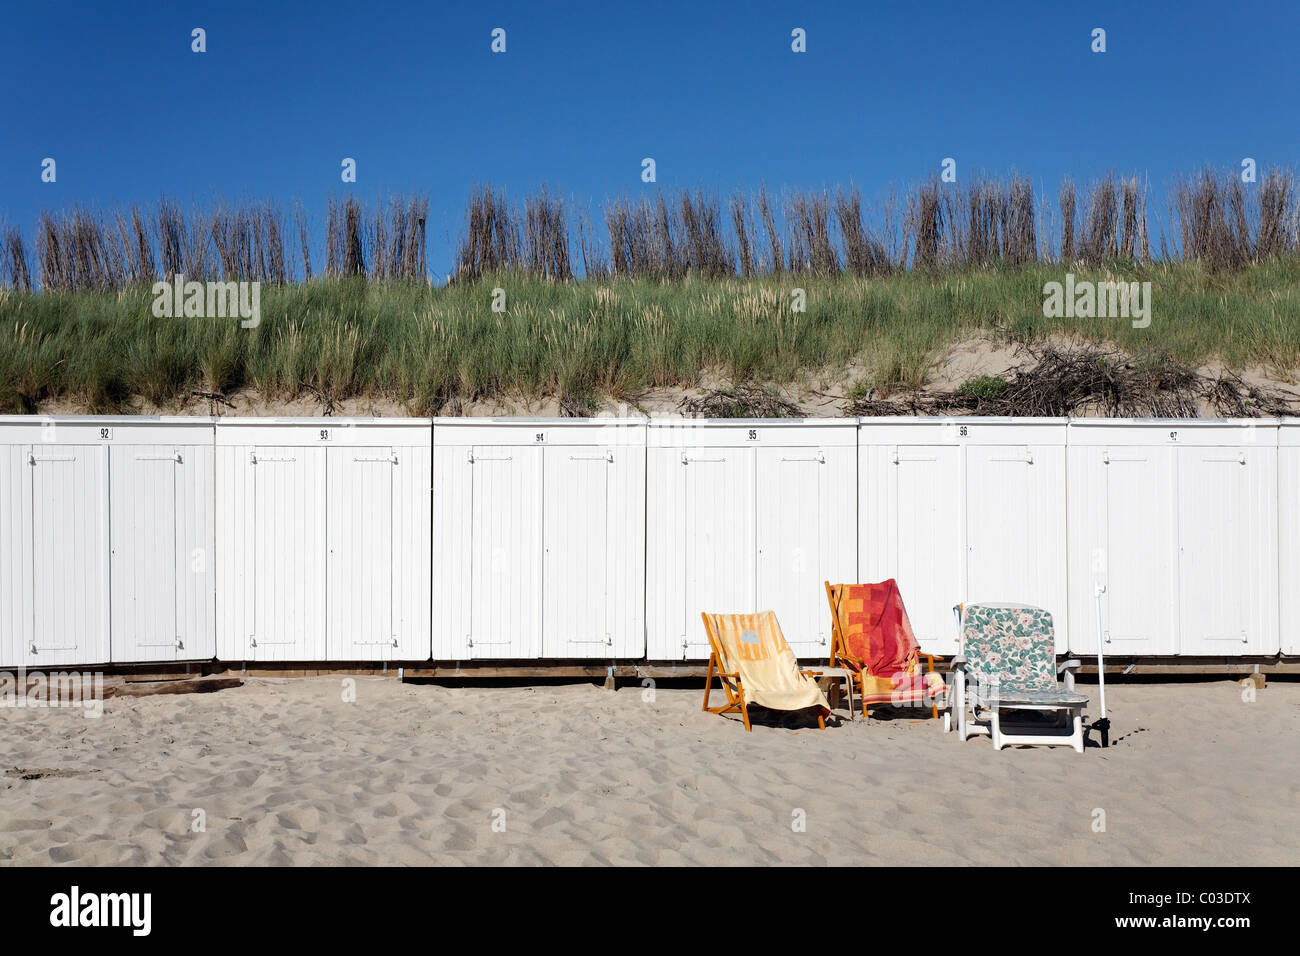 Three unoccupied sunbeds with towels in front of white beach huts, , Walcheren peninsula, Zeeland province, Netherlands, - Stock Image